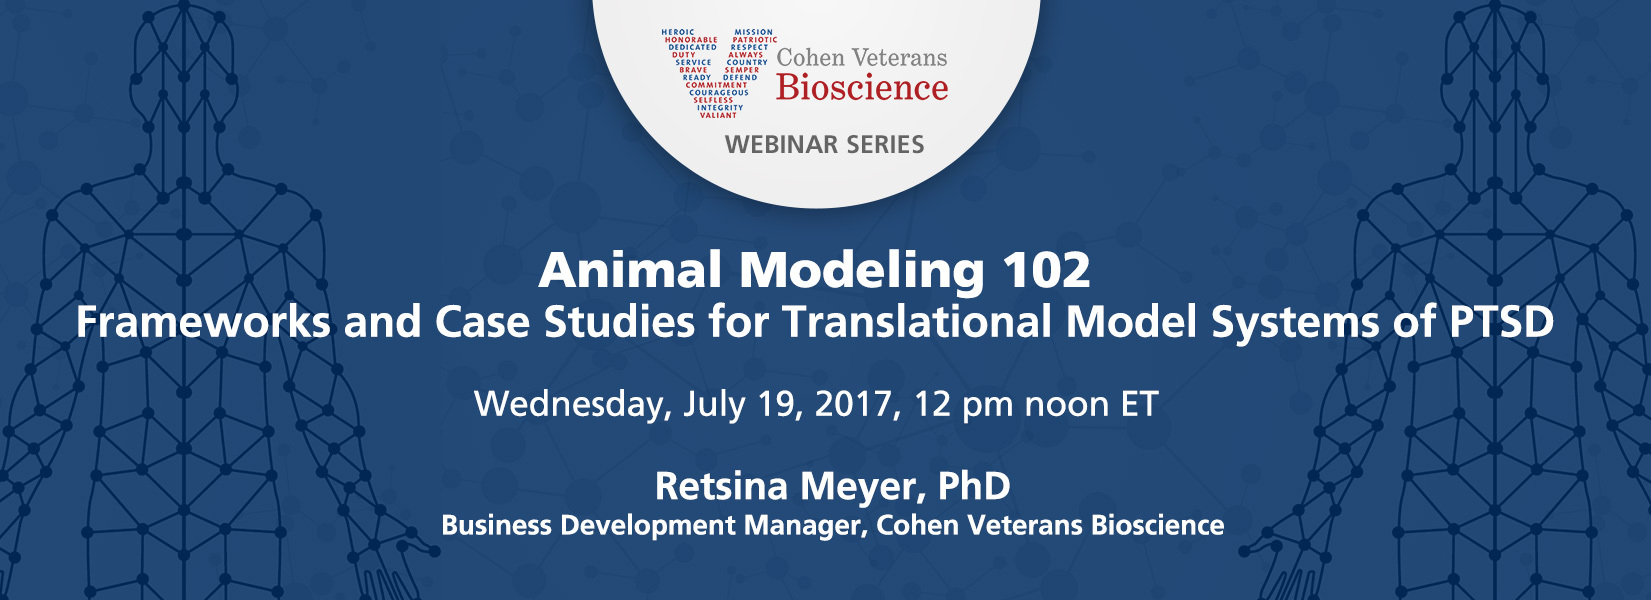 Cohen Veterans Bioscience July 2017 Webinar